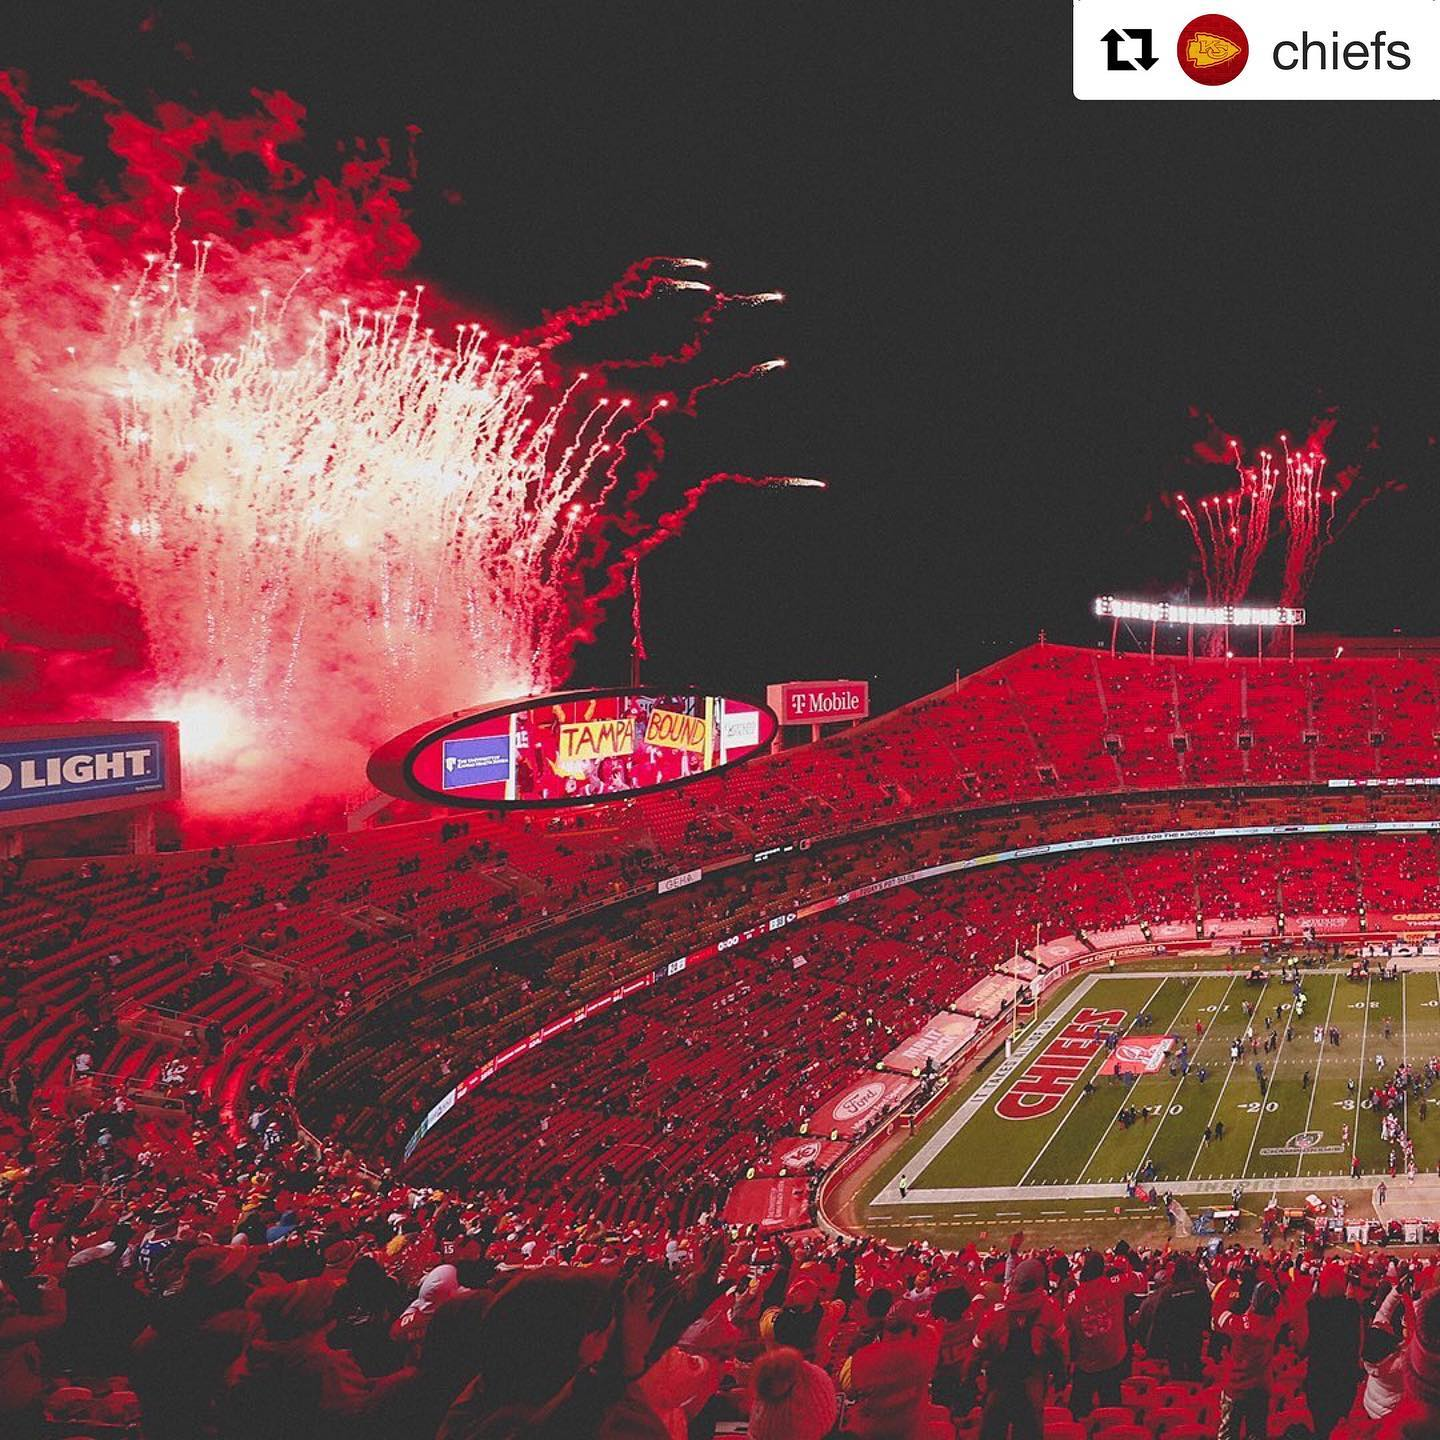 Yayyyyyyyyyyy, Chiefs️ #ichoosebeauty Day 2623#Repost @chiefs・・・We ️ you, #ChiefsKingdom!